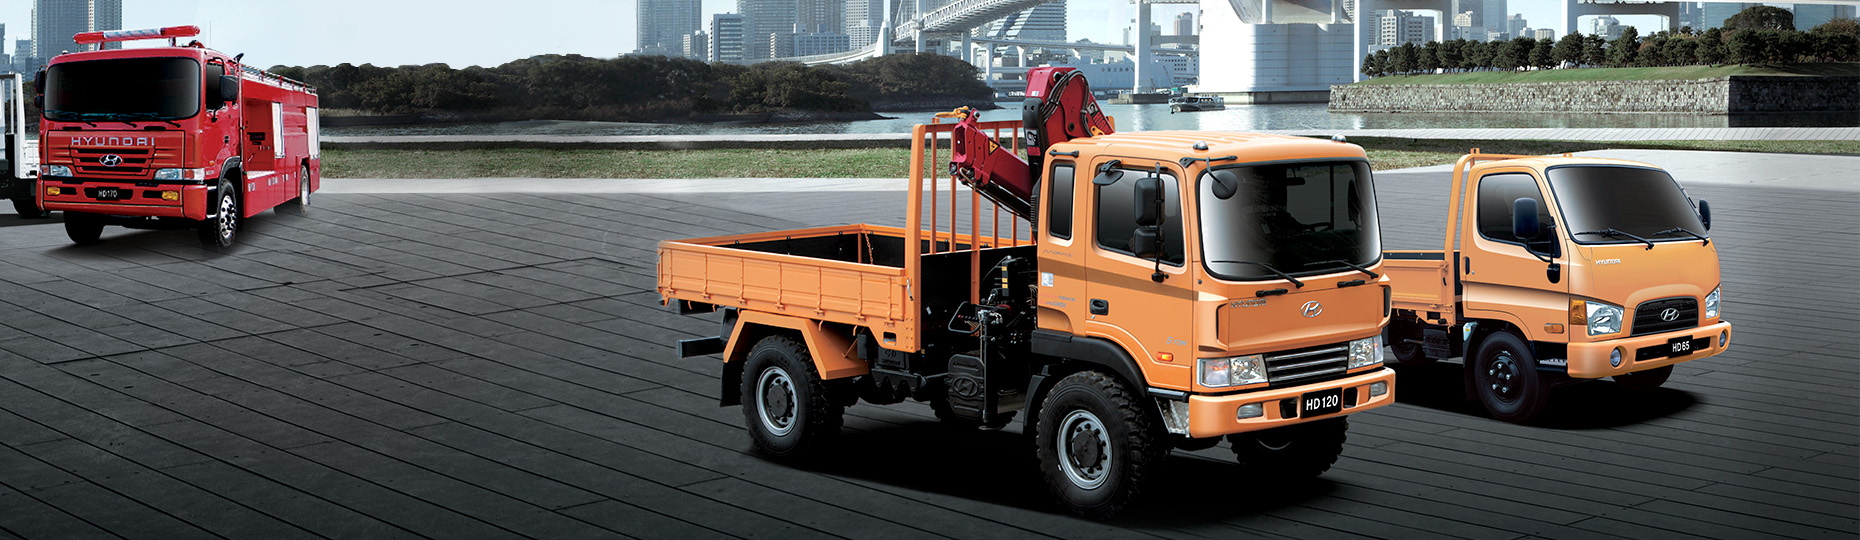 special-purpose-fire-fighting-truck-kv